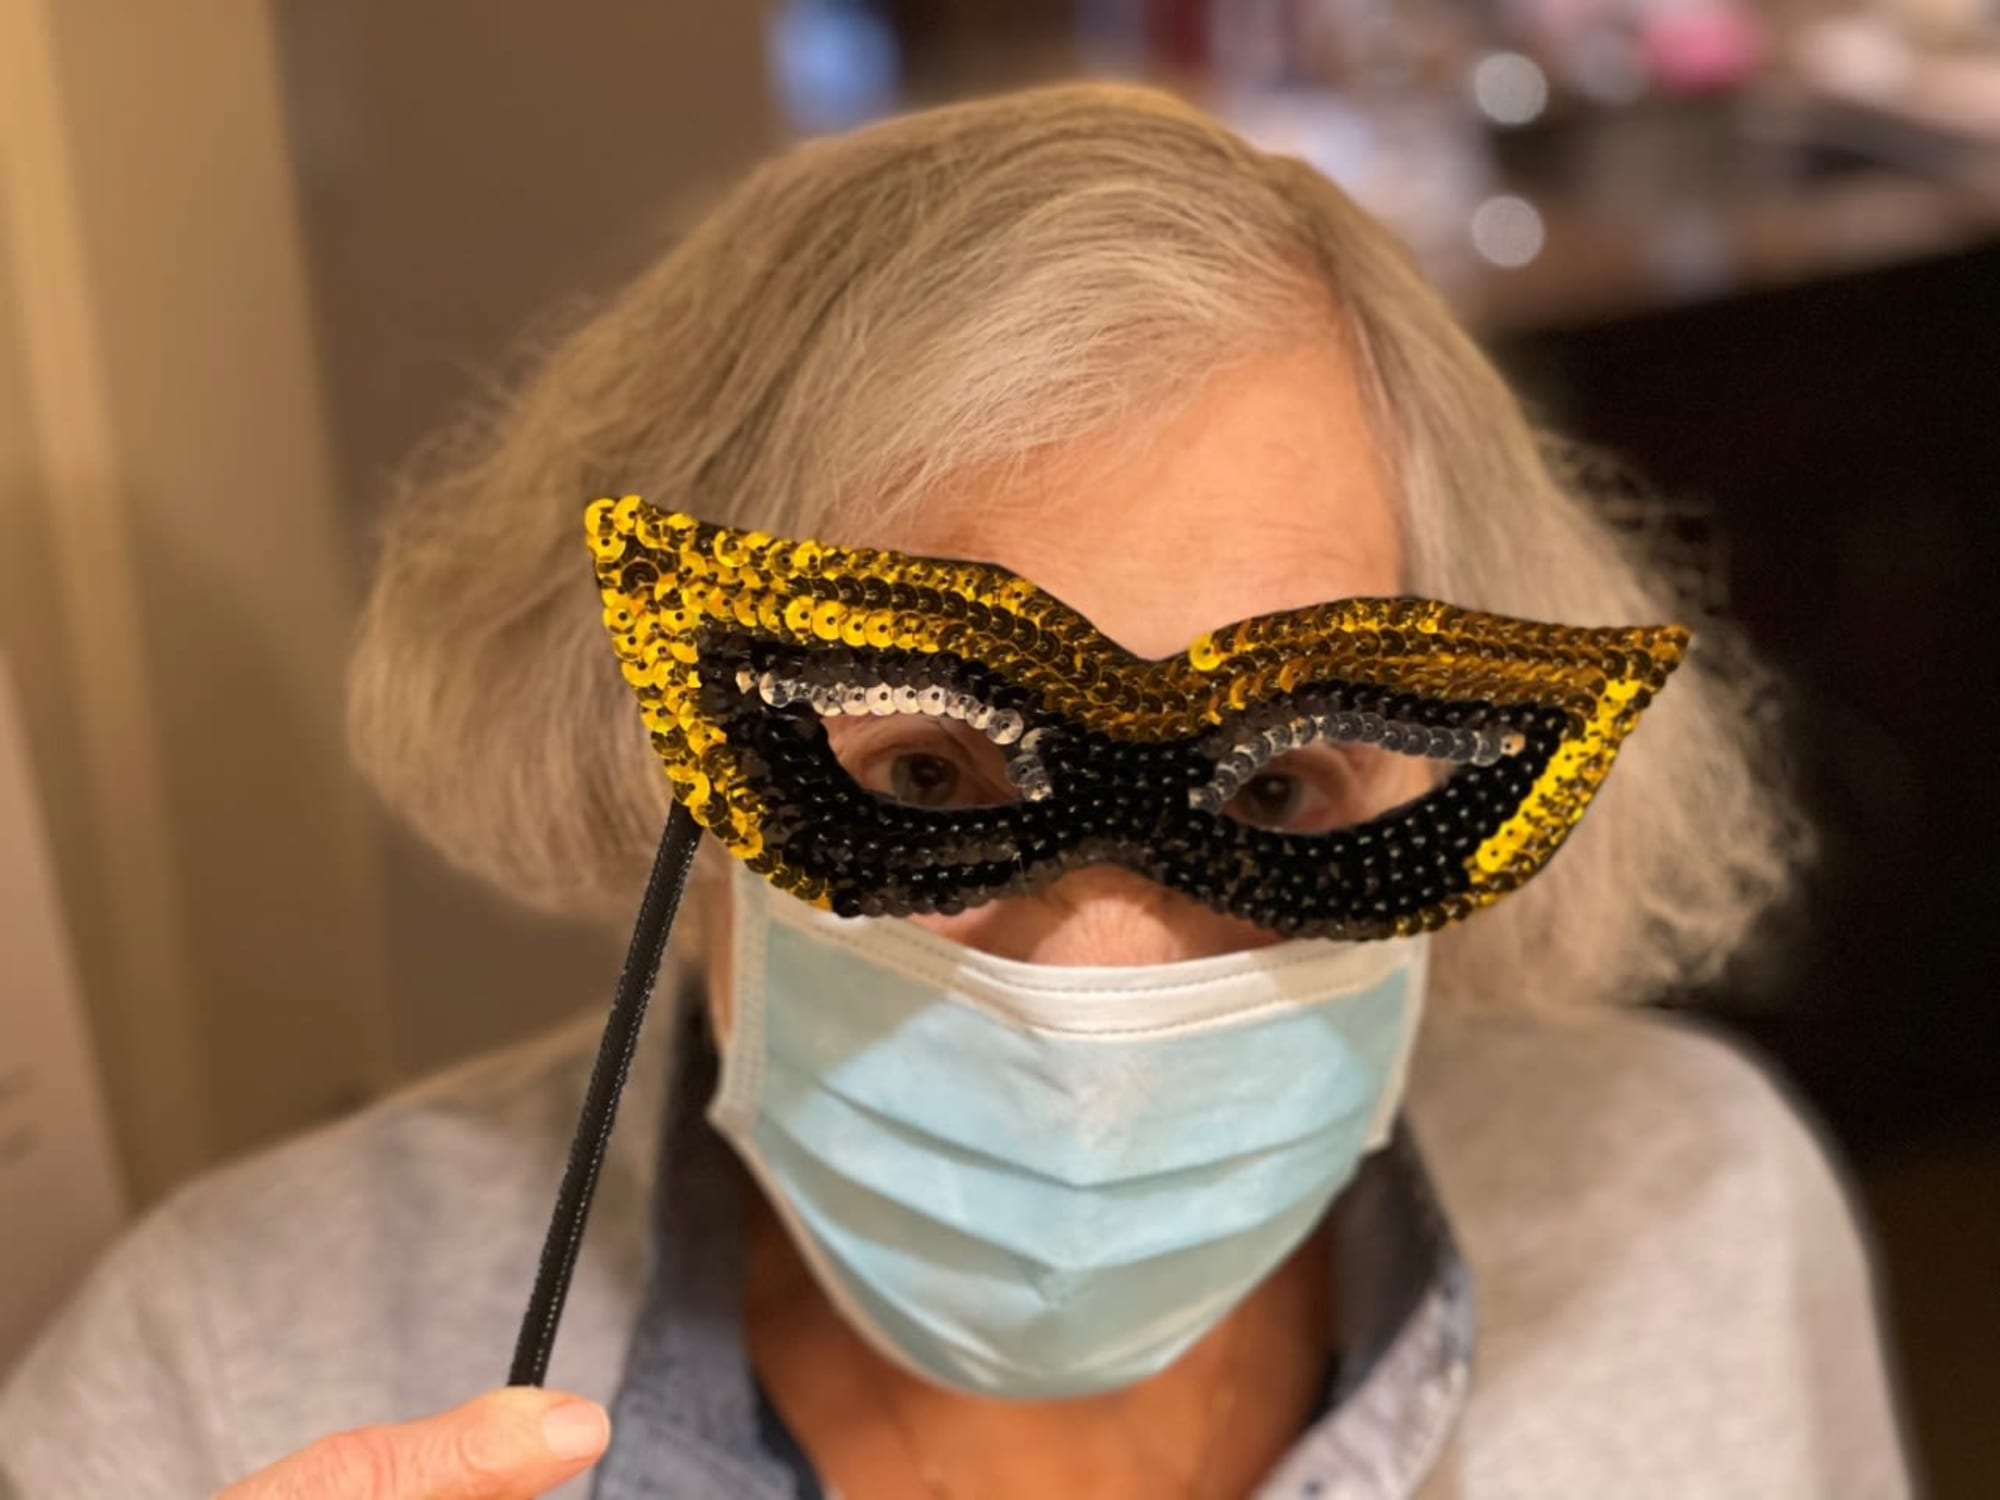 Holding up a mask at The Bellettini in Bellevue, Washington